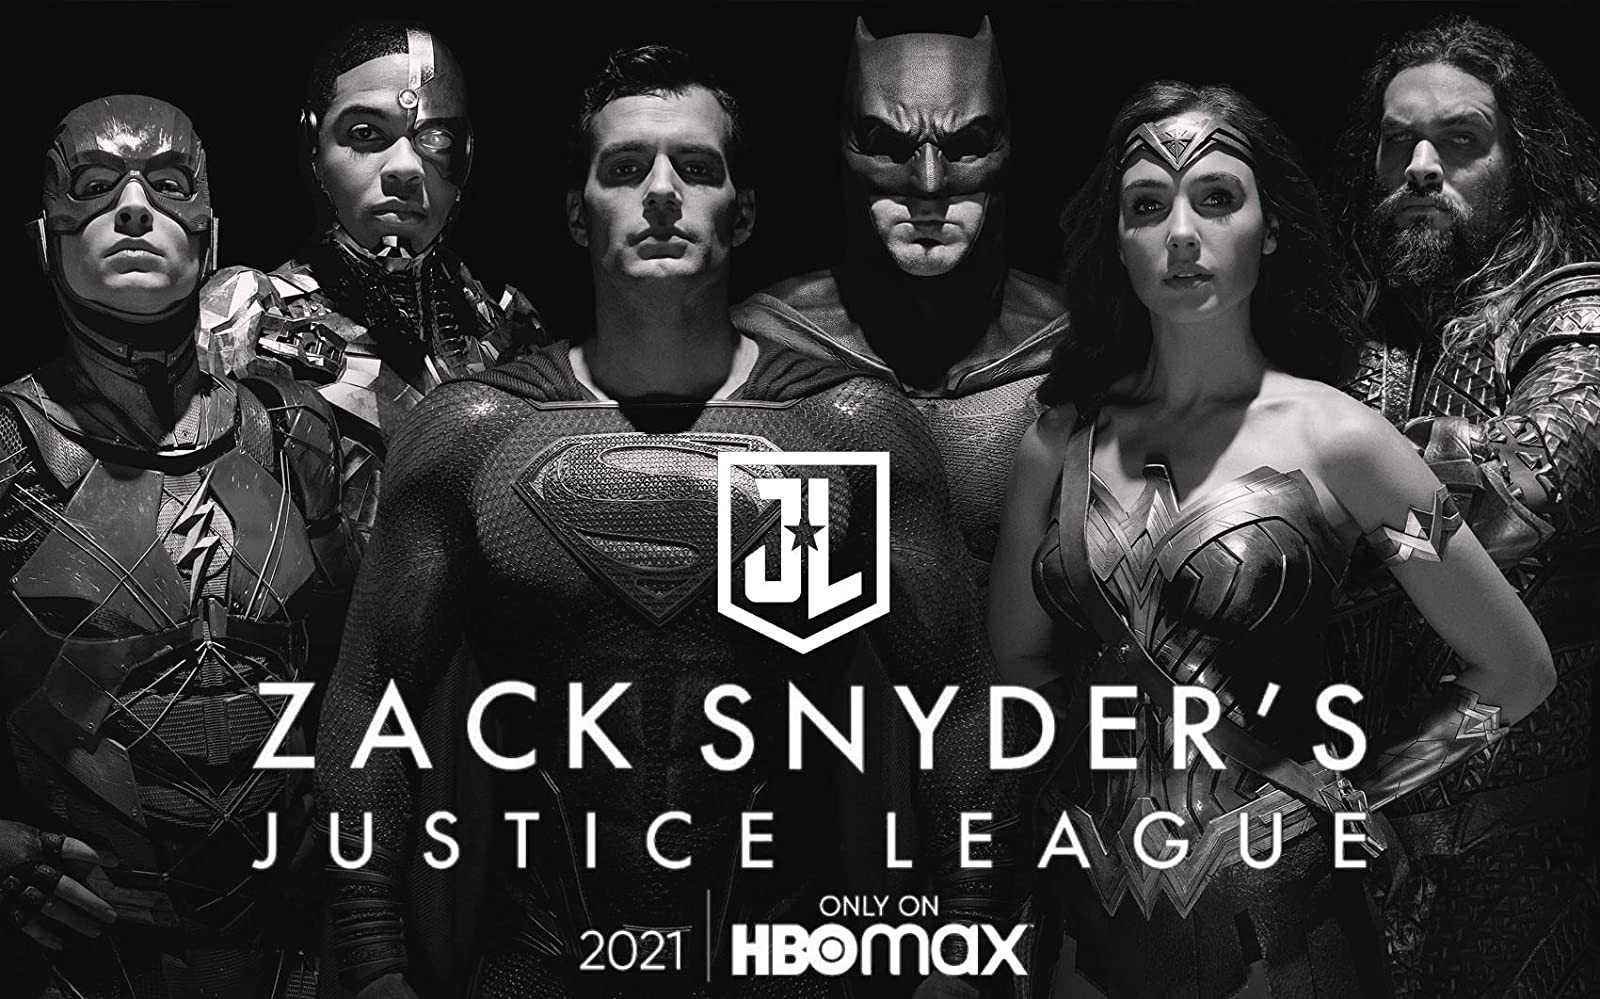 Zack Snyder's Justice League trailer